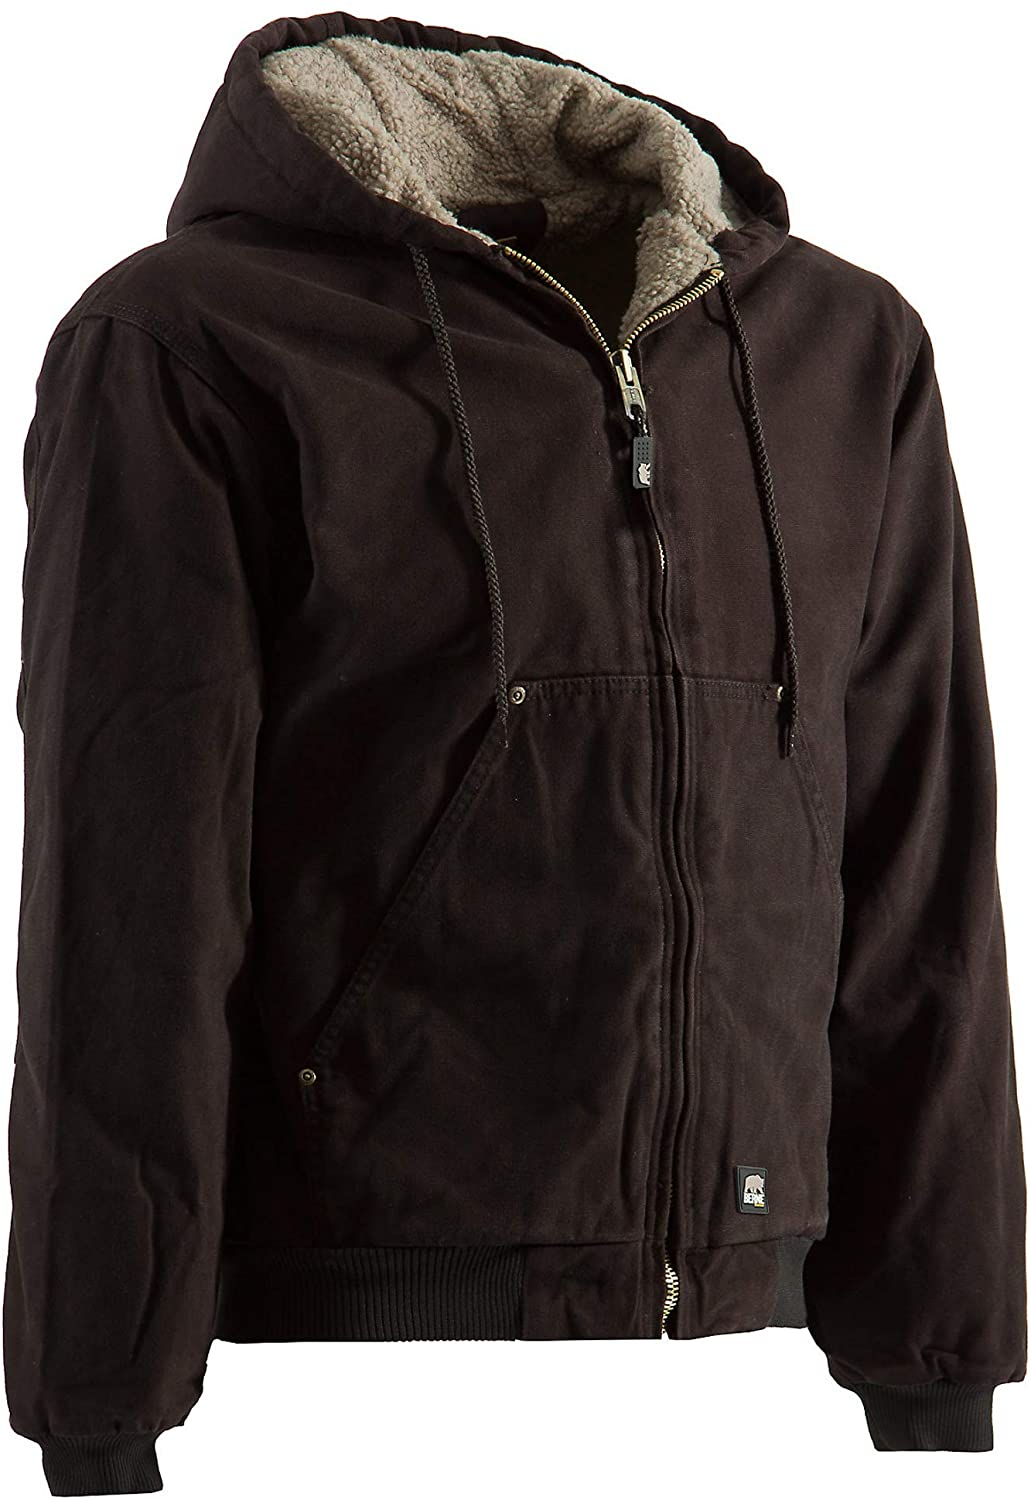 Berne High Country Hooded Jacket